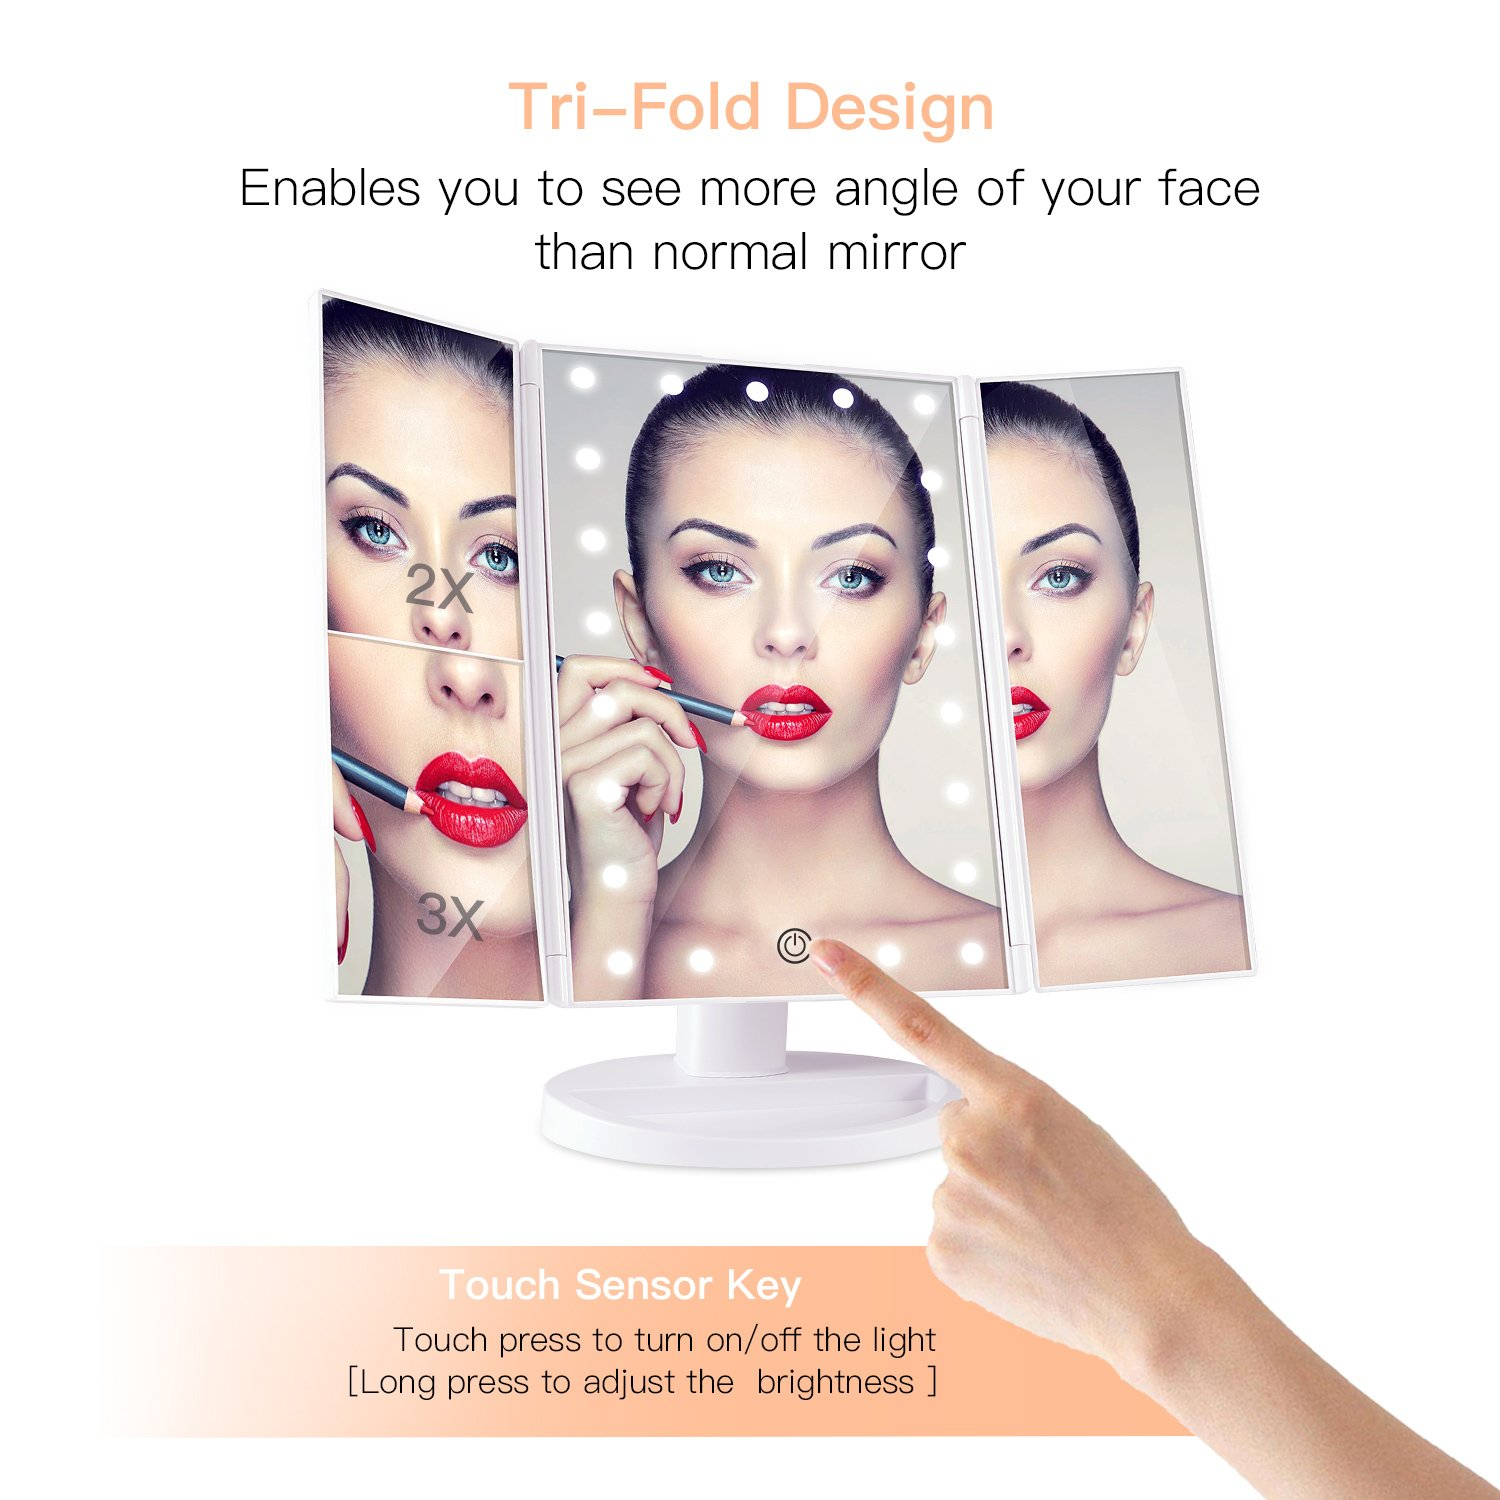 BESTOPE Makeup Vanity Mirror with 21 LED Lights 3X/2X Magnifying Touch Screen,Dual Power Supply,180° Adjustable Rotation,Countertop Cosmetic, 2 Pound by BESTOPE (Image #2)